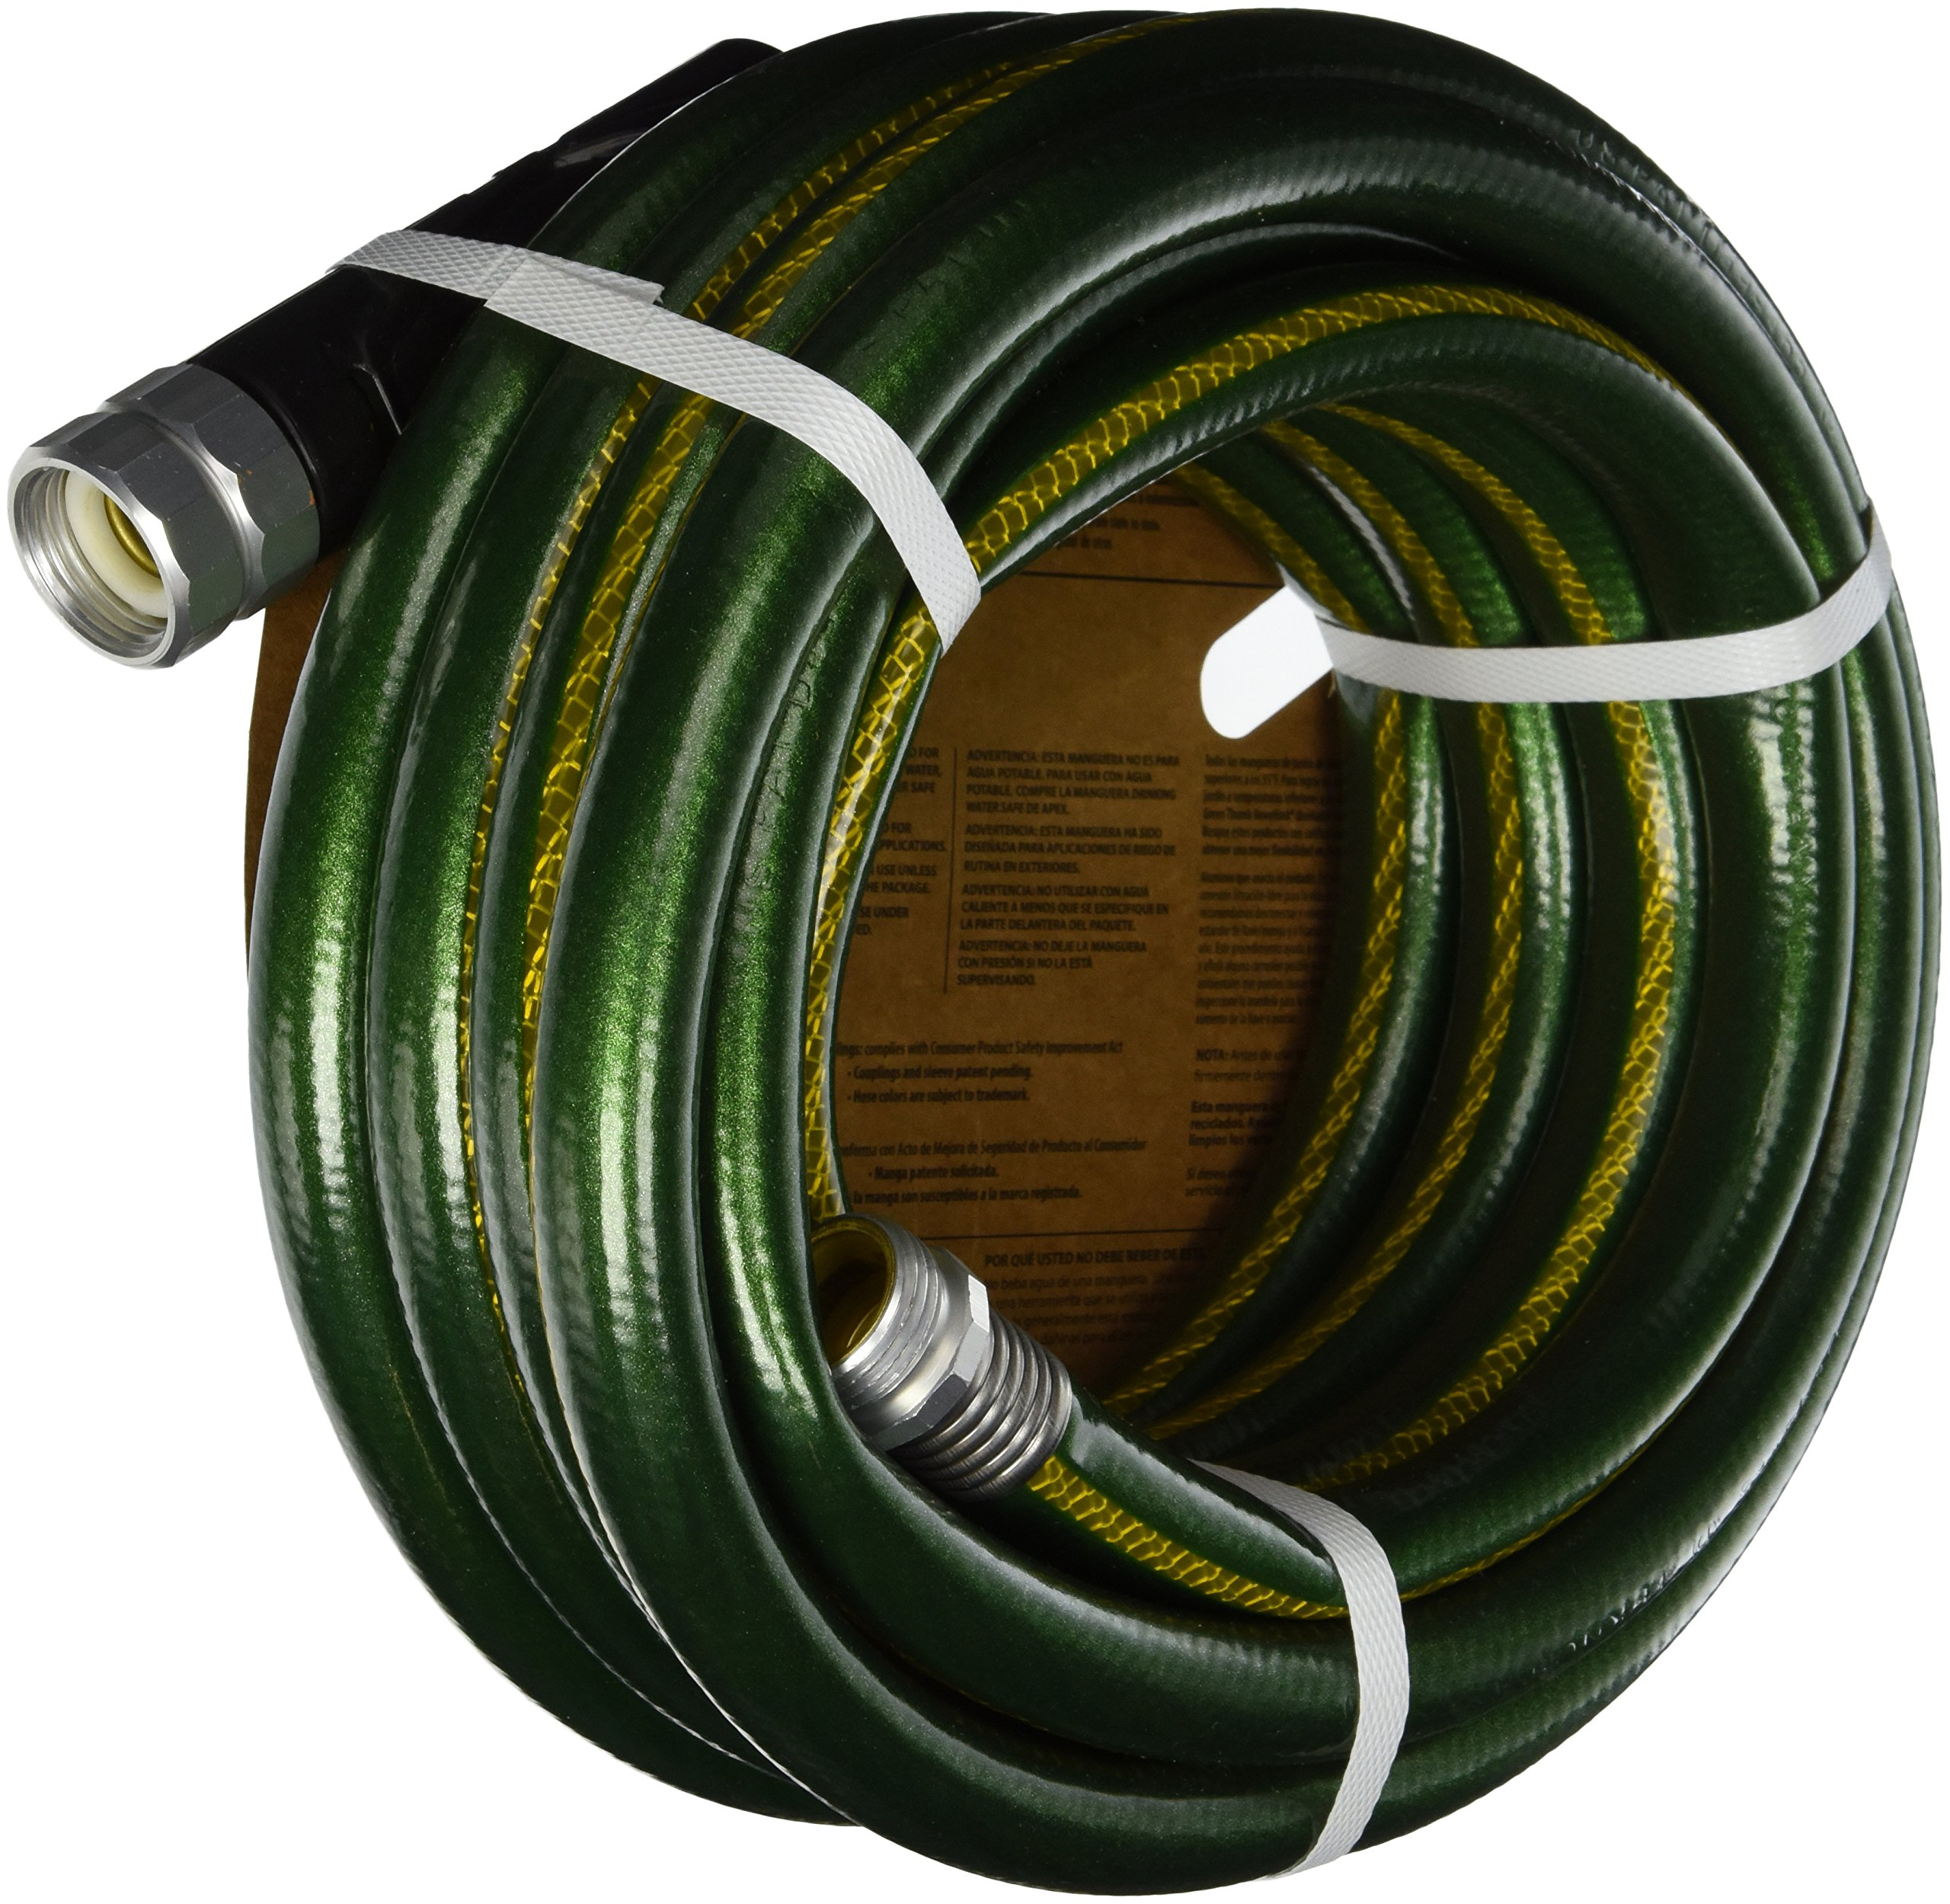 teknor-apex company 8614-25 Green Thumb, 5/8'' x 25', Neverkink, Heavy Duty Garden Hose